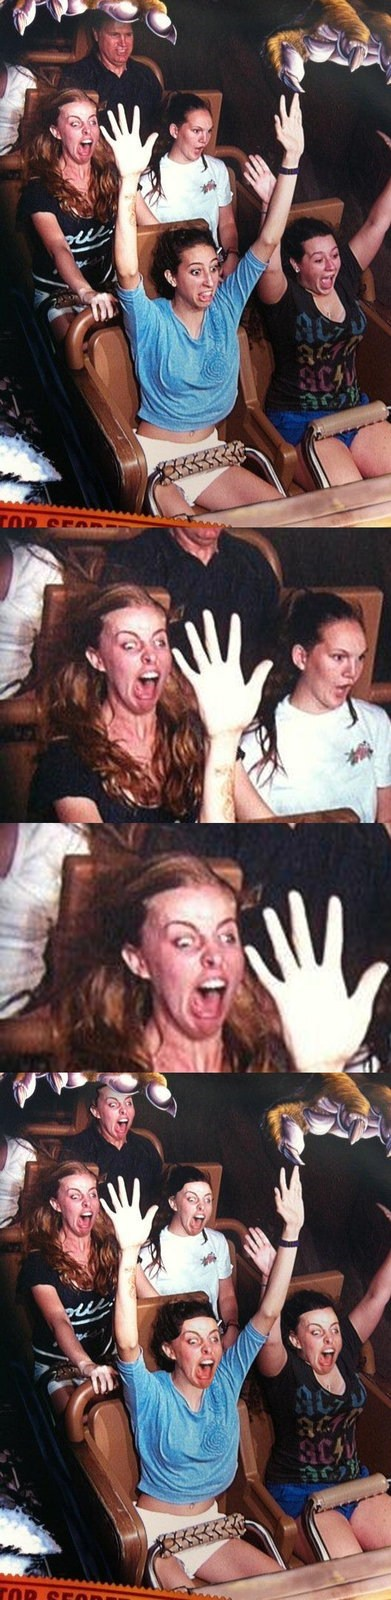 photobomb,amusement parks